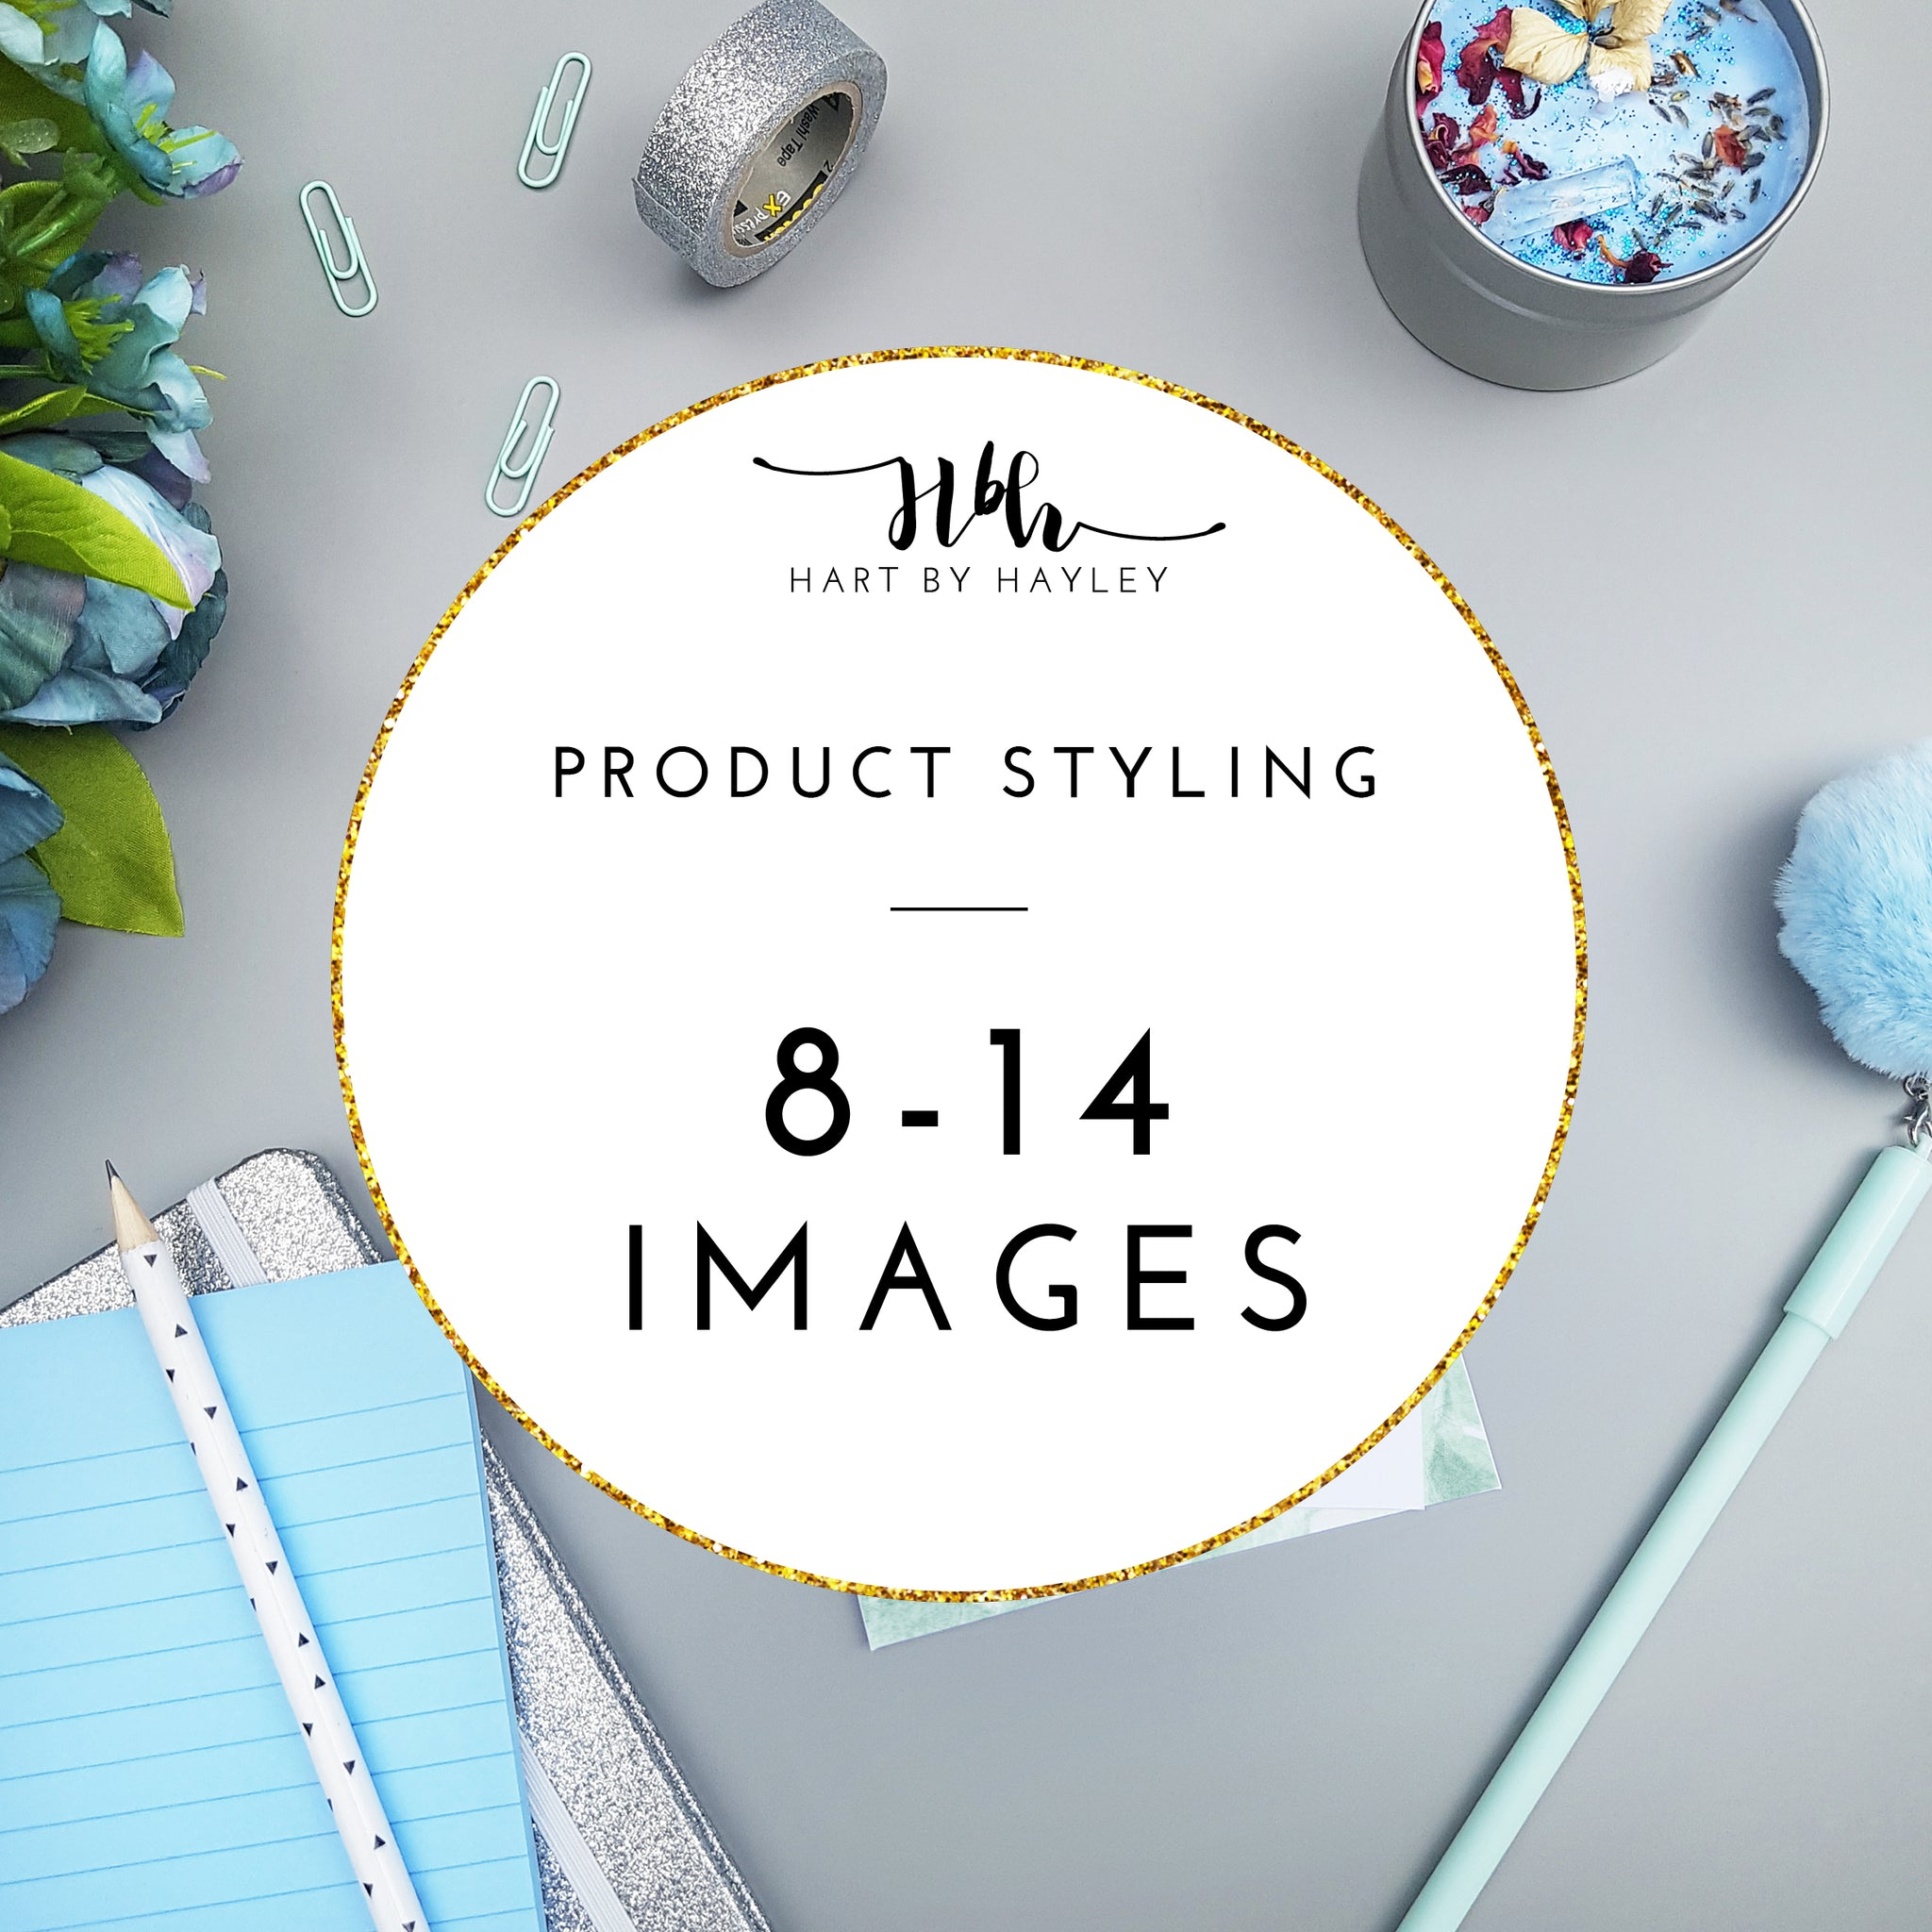 Product styling for 8-14 images